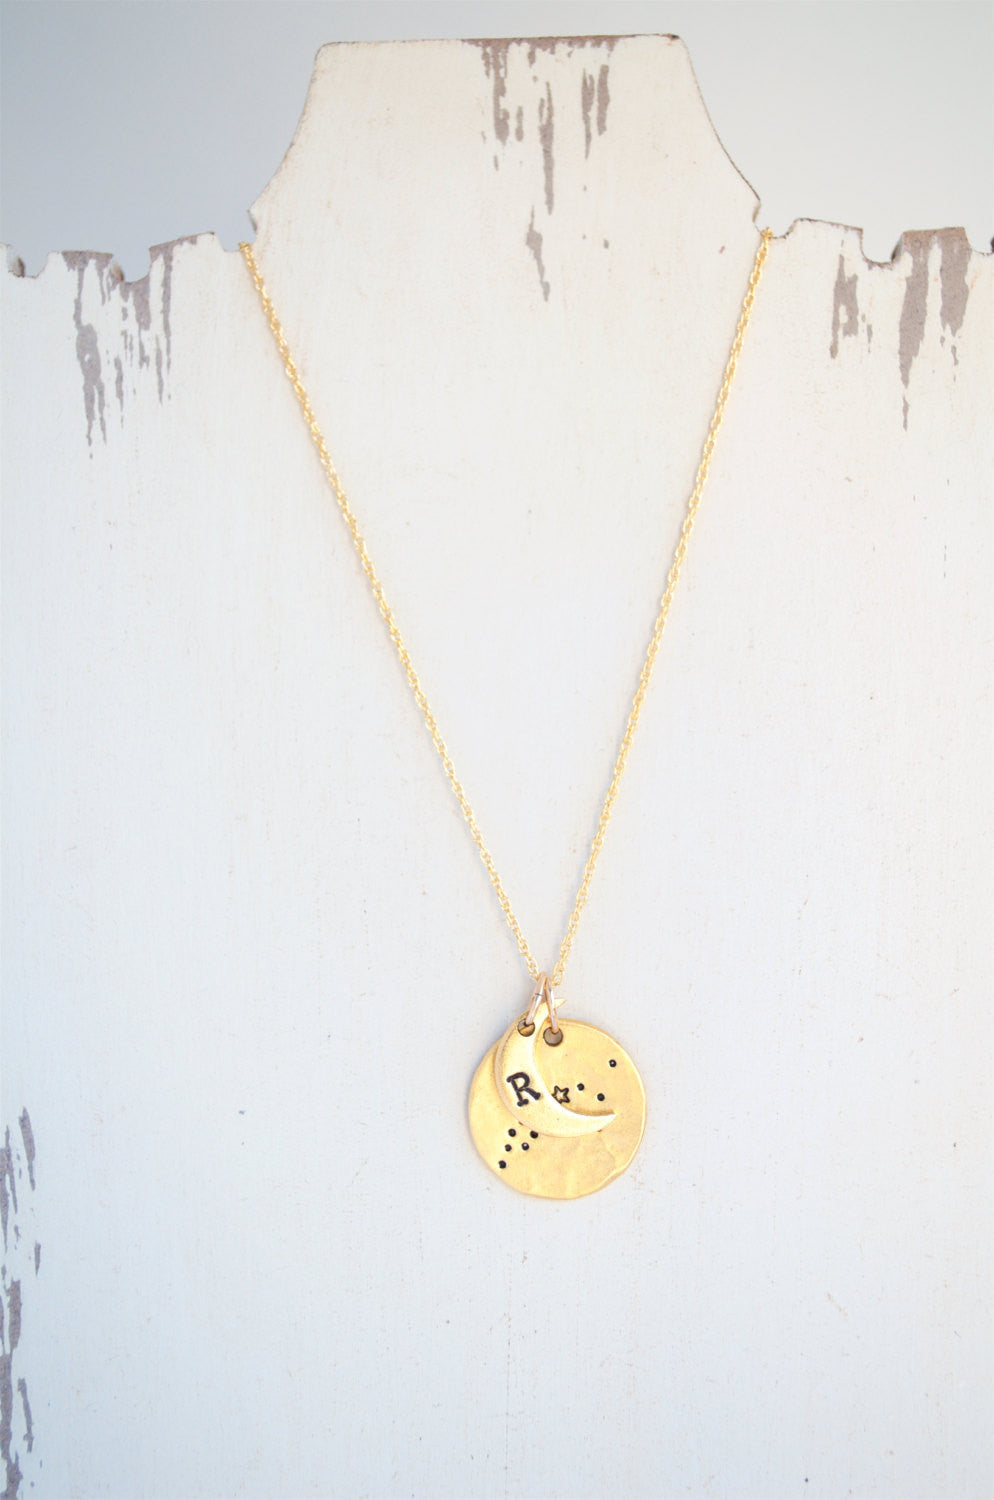 One zodiac constellation necklace on a display.